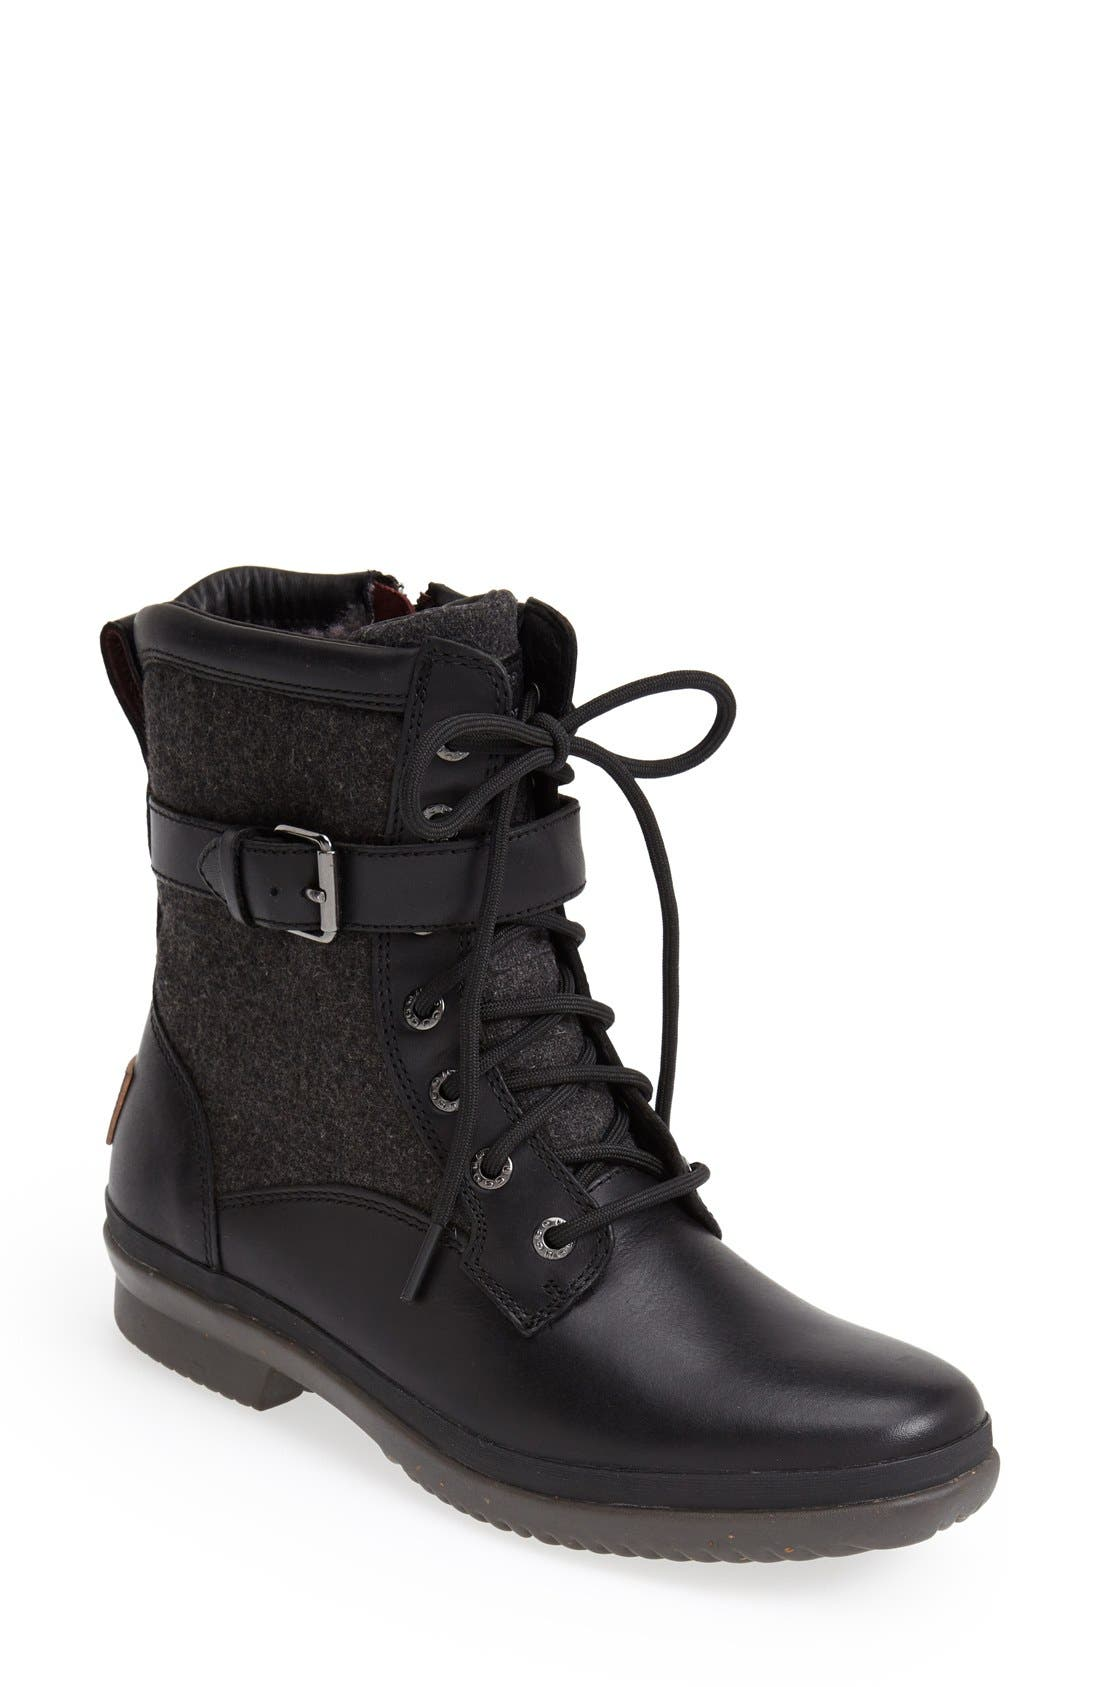 Main Image - UGG® Kesey Waterproof Boot (Women)